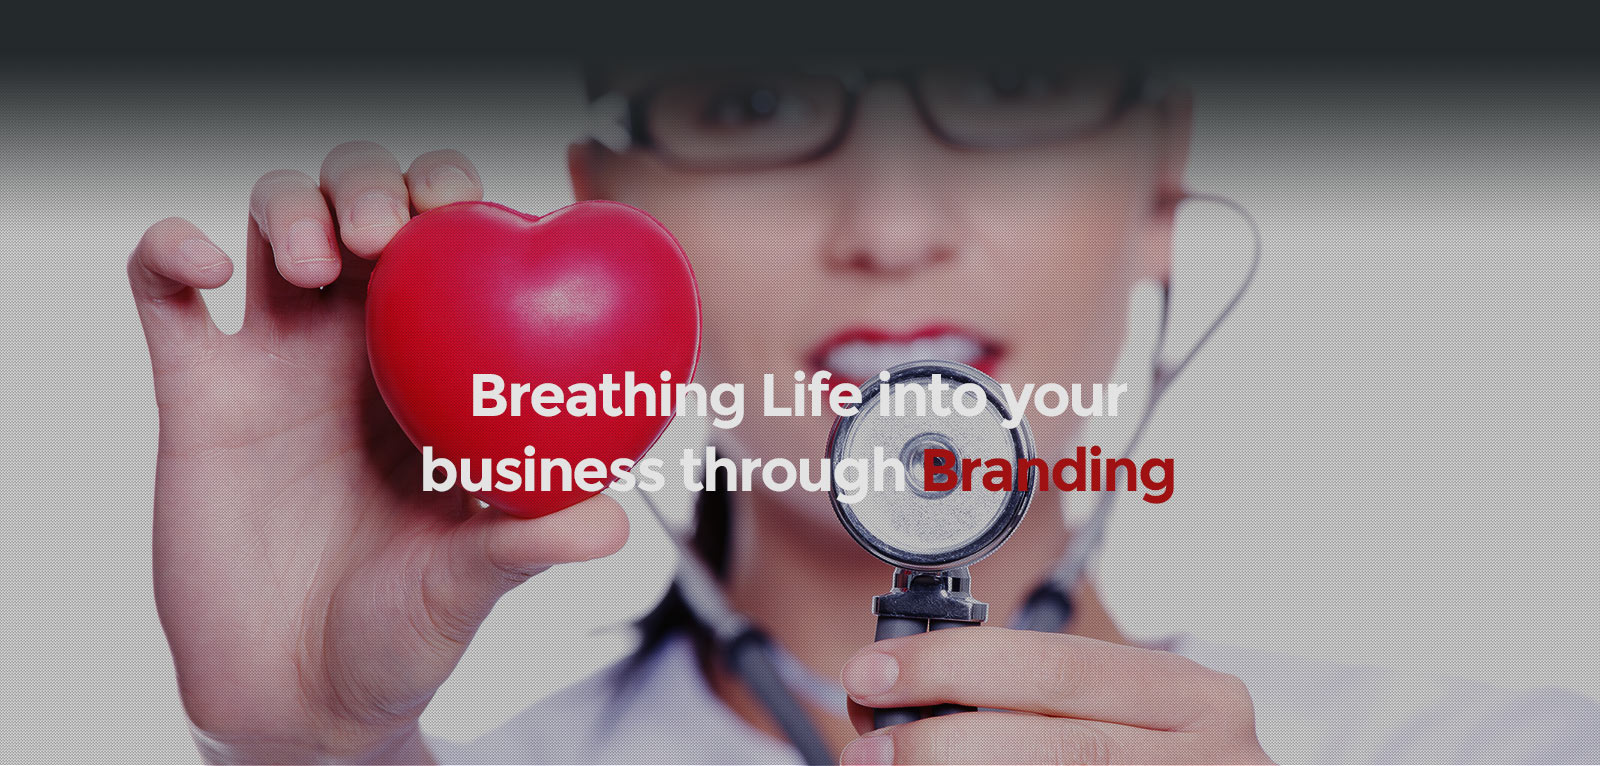 Breathing Life into your business through Branding